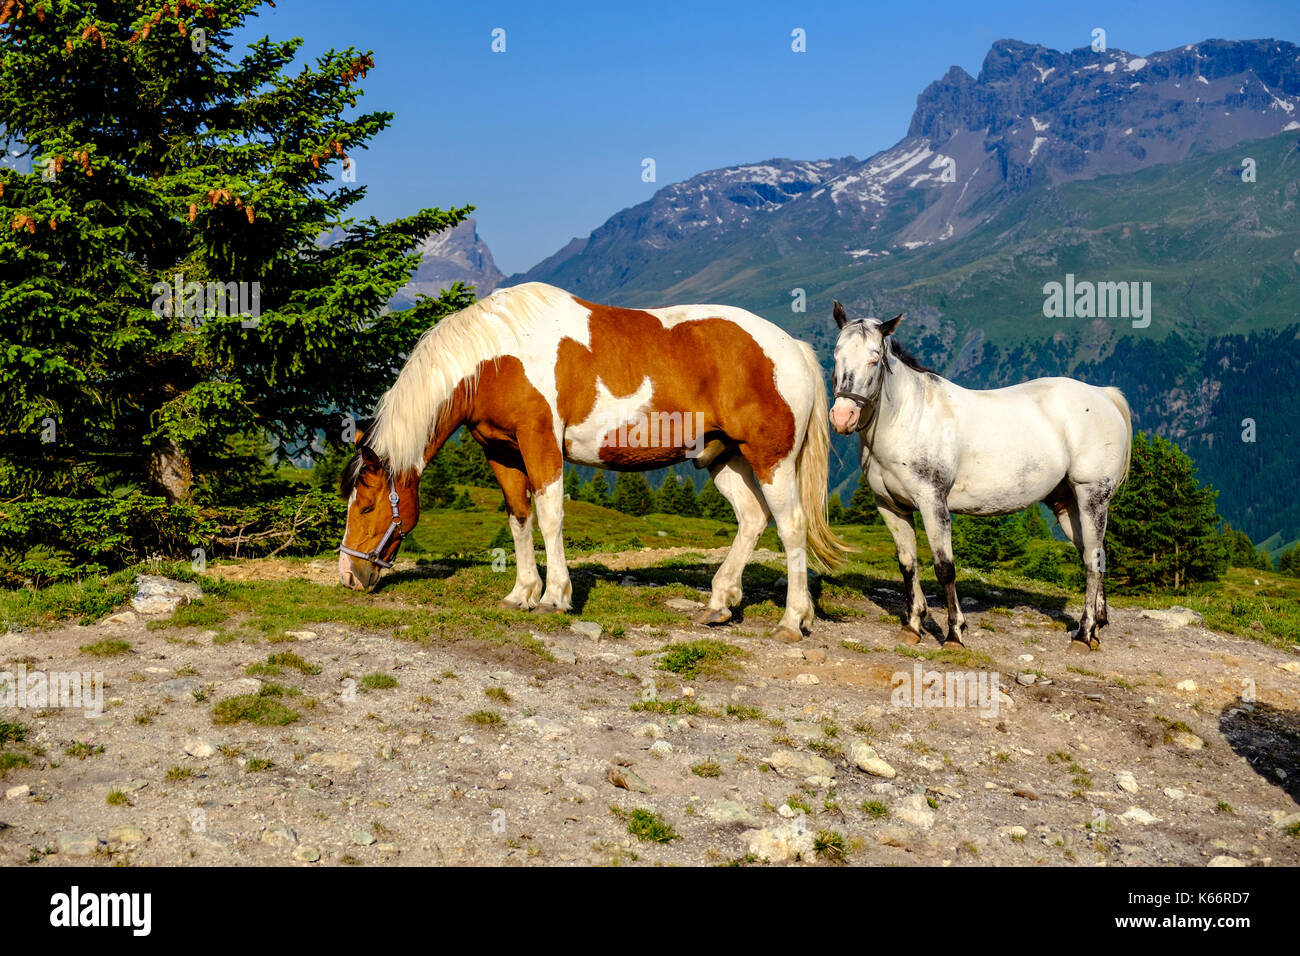 Horses are grazing on the green meadows of the mountain slopes at Alp Flix - Stock Image